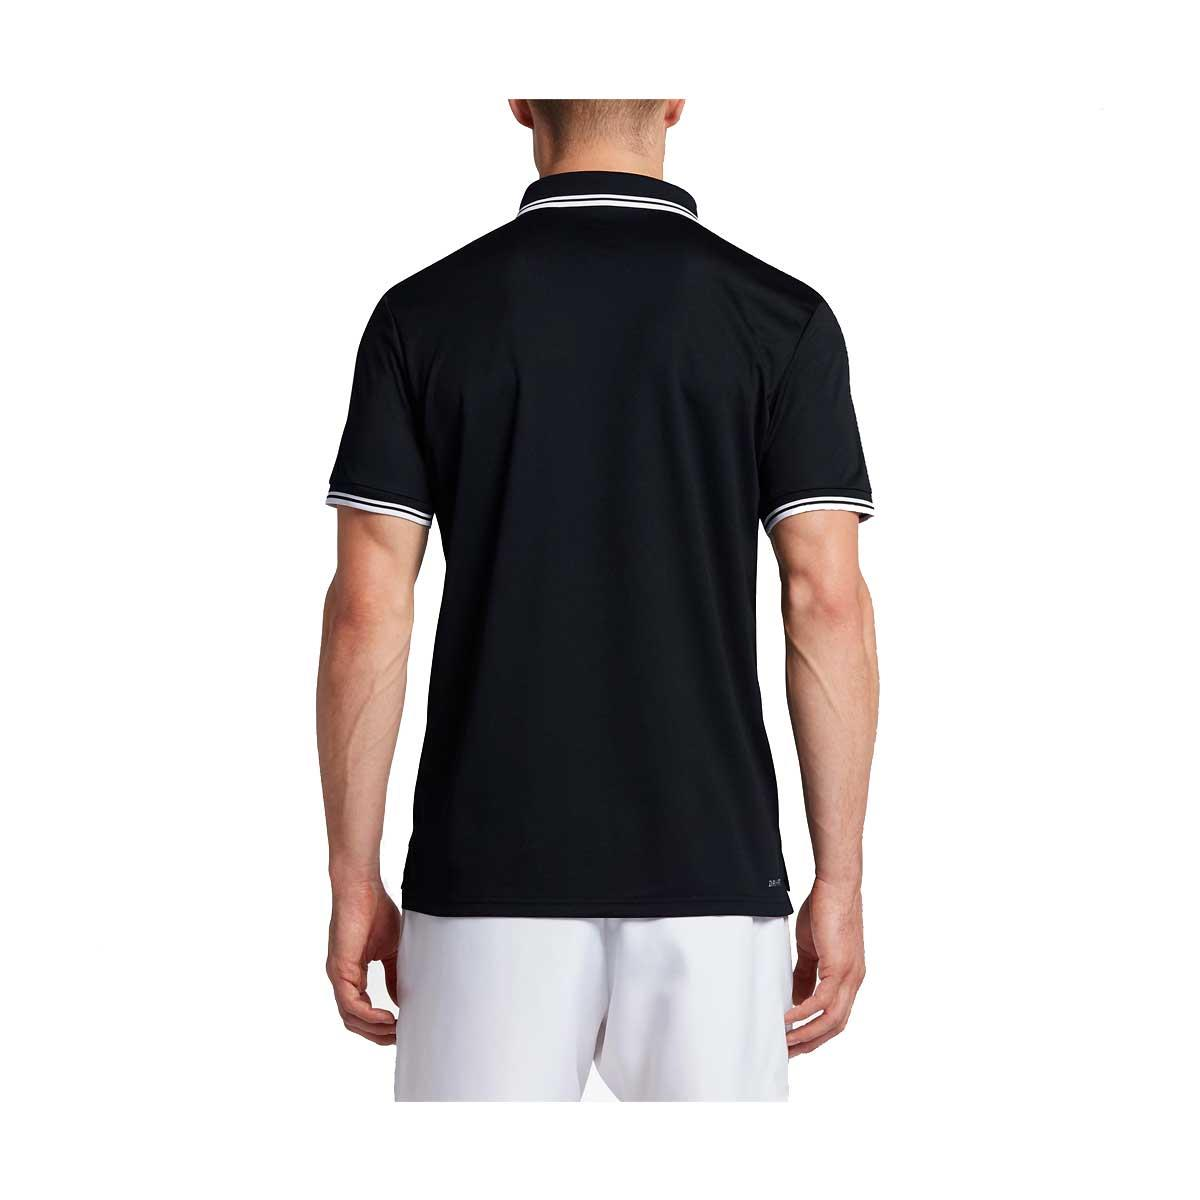 d4ad8c88ab Camisa Polo Nike Court Dry Solid Masculino